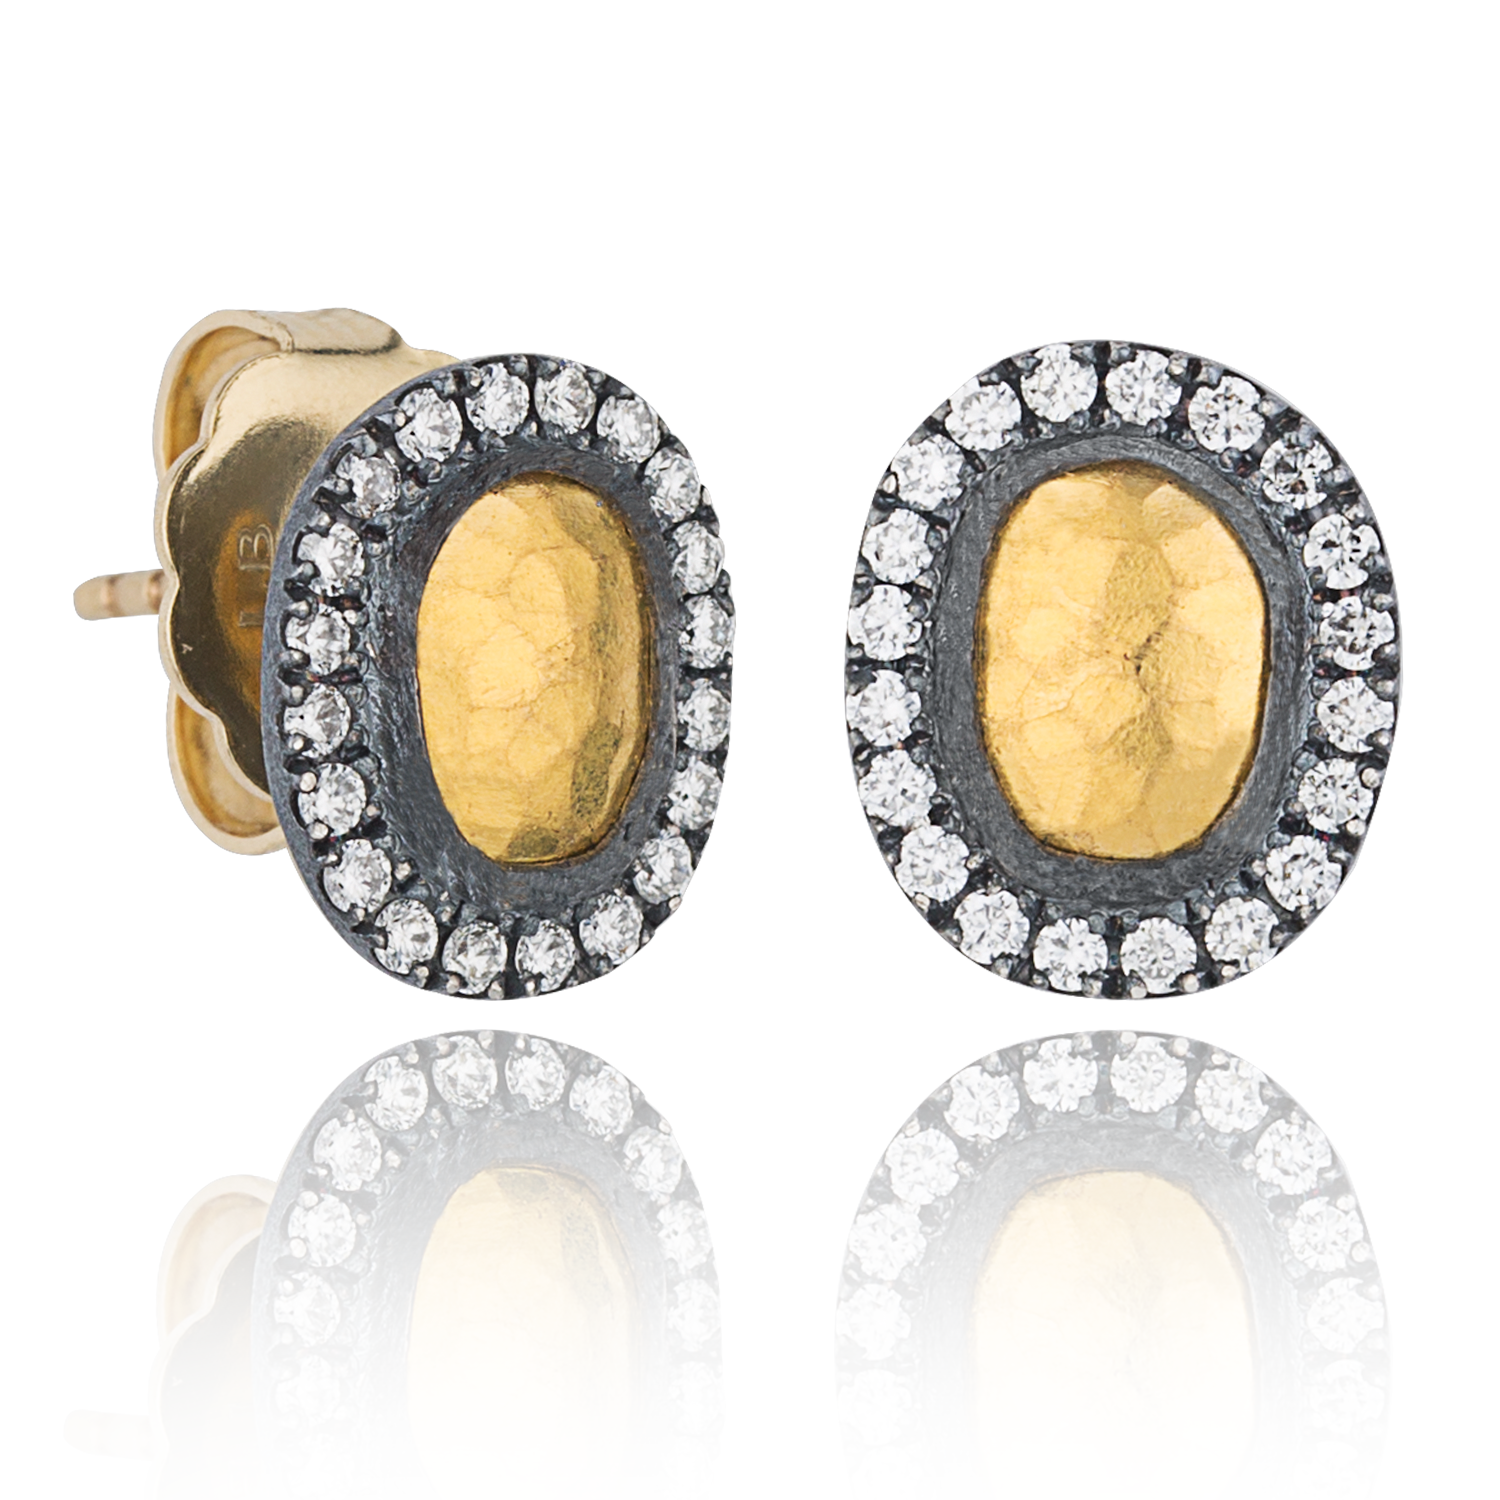 "Lika Behar ""Reflection"" Stud Earrings Sterling & 24K Gold with Diamonds RFL-E-301-GOXD-13"